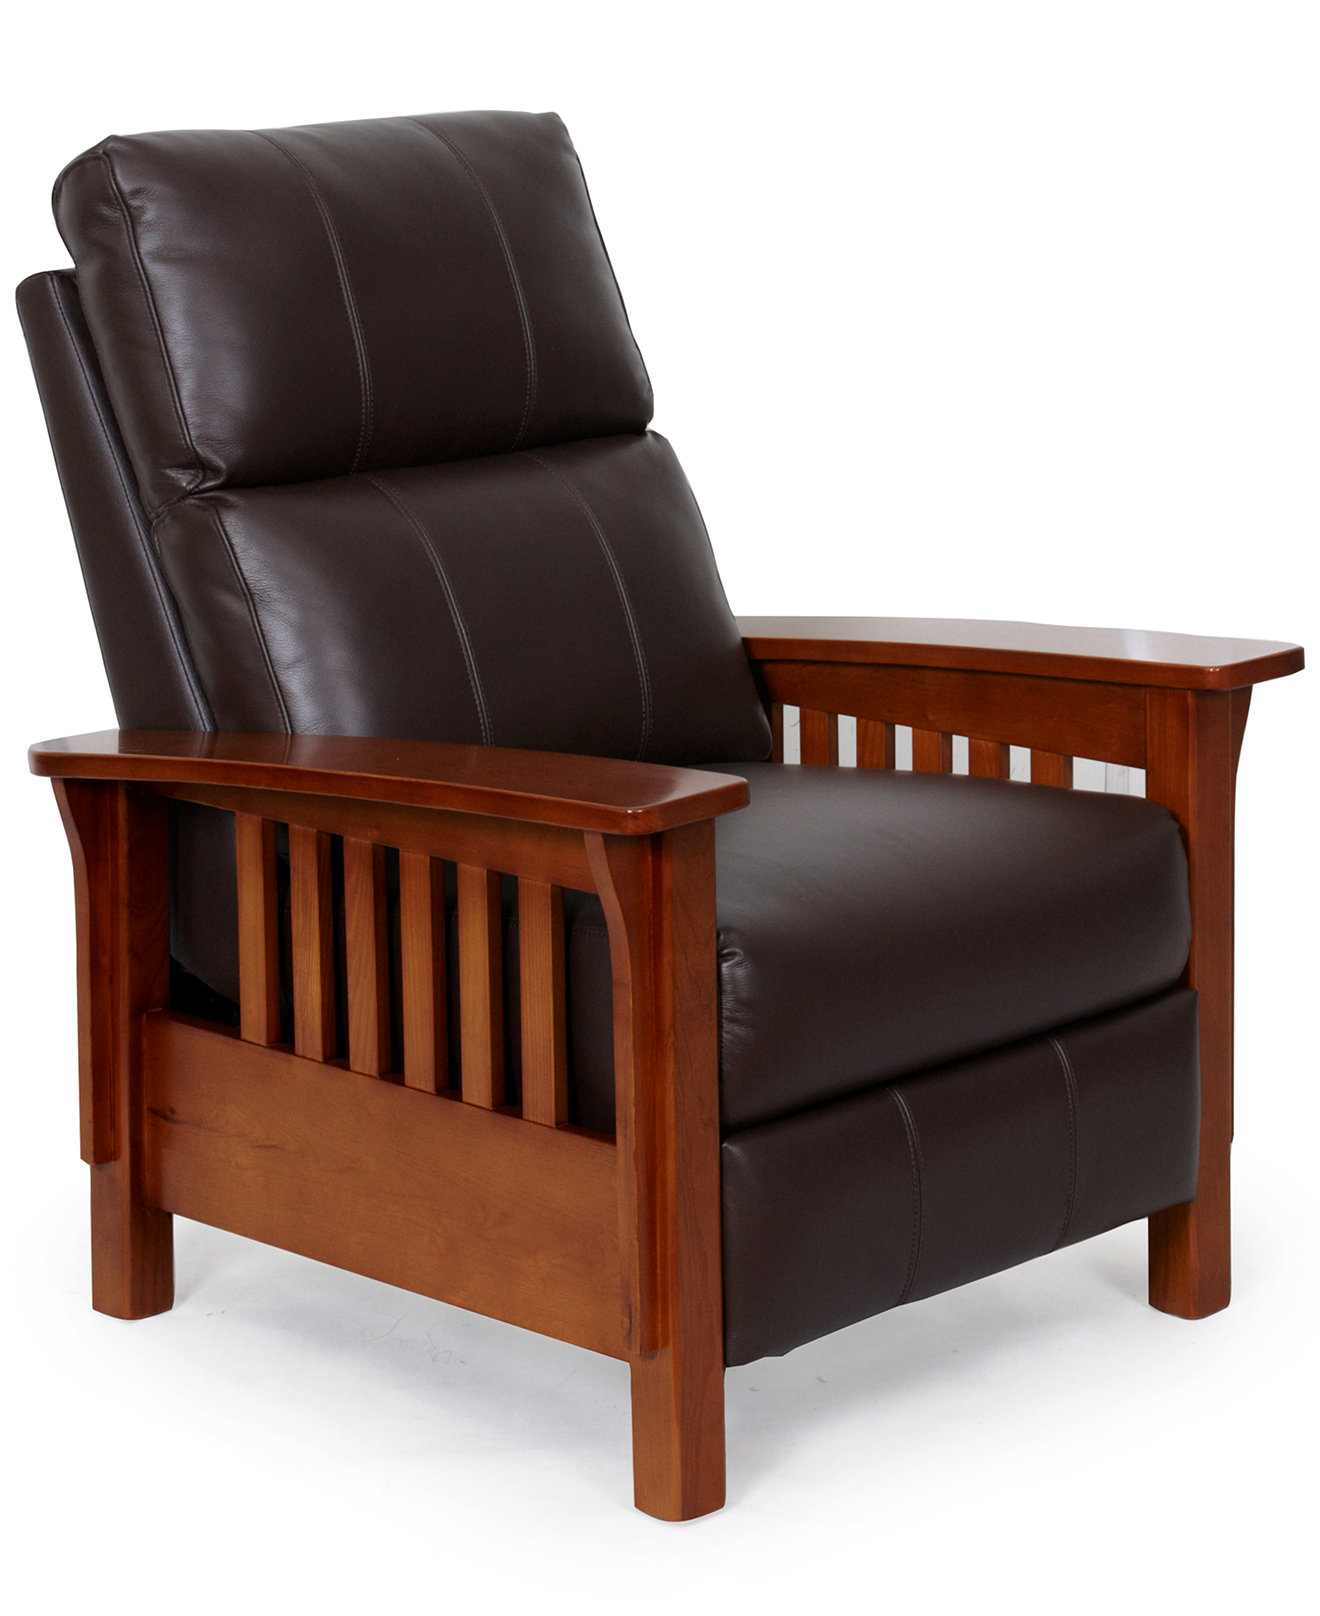 The Best High End Recliners For You  sc 1 st  Best Recliners & High Leg Recliner Reviews Archives | Best Recliners islam-shia.org